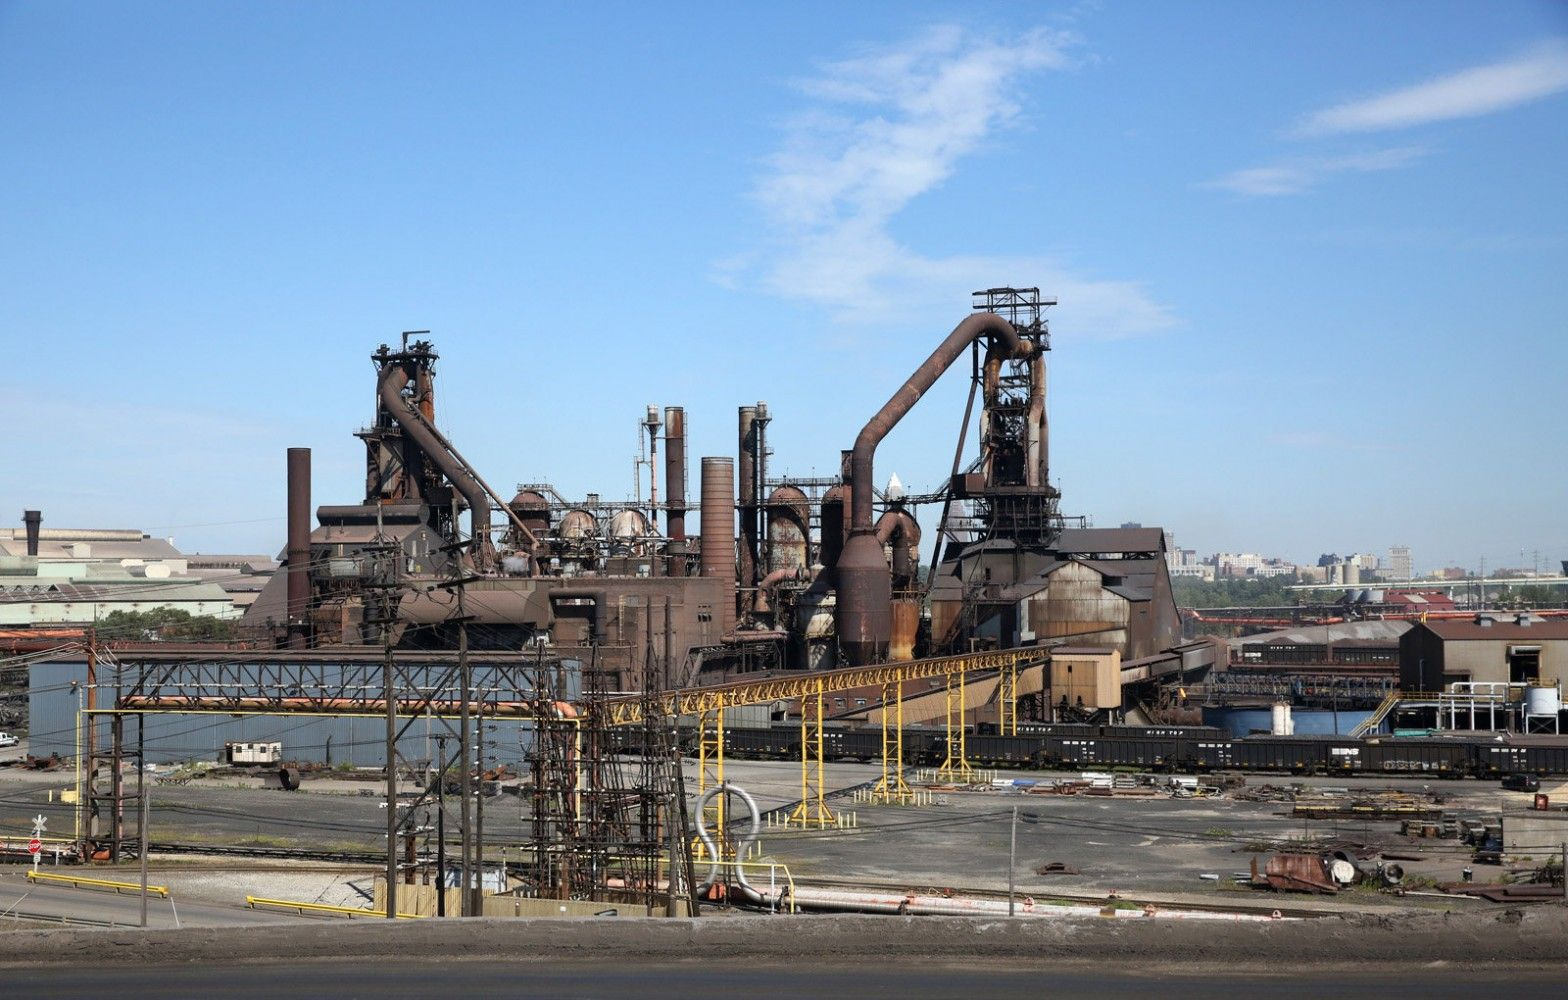 Blast furnaces of ArcelorMittal Cleveland mix iron ore